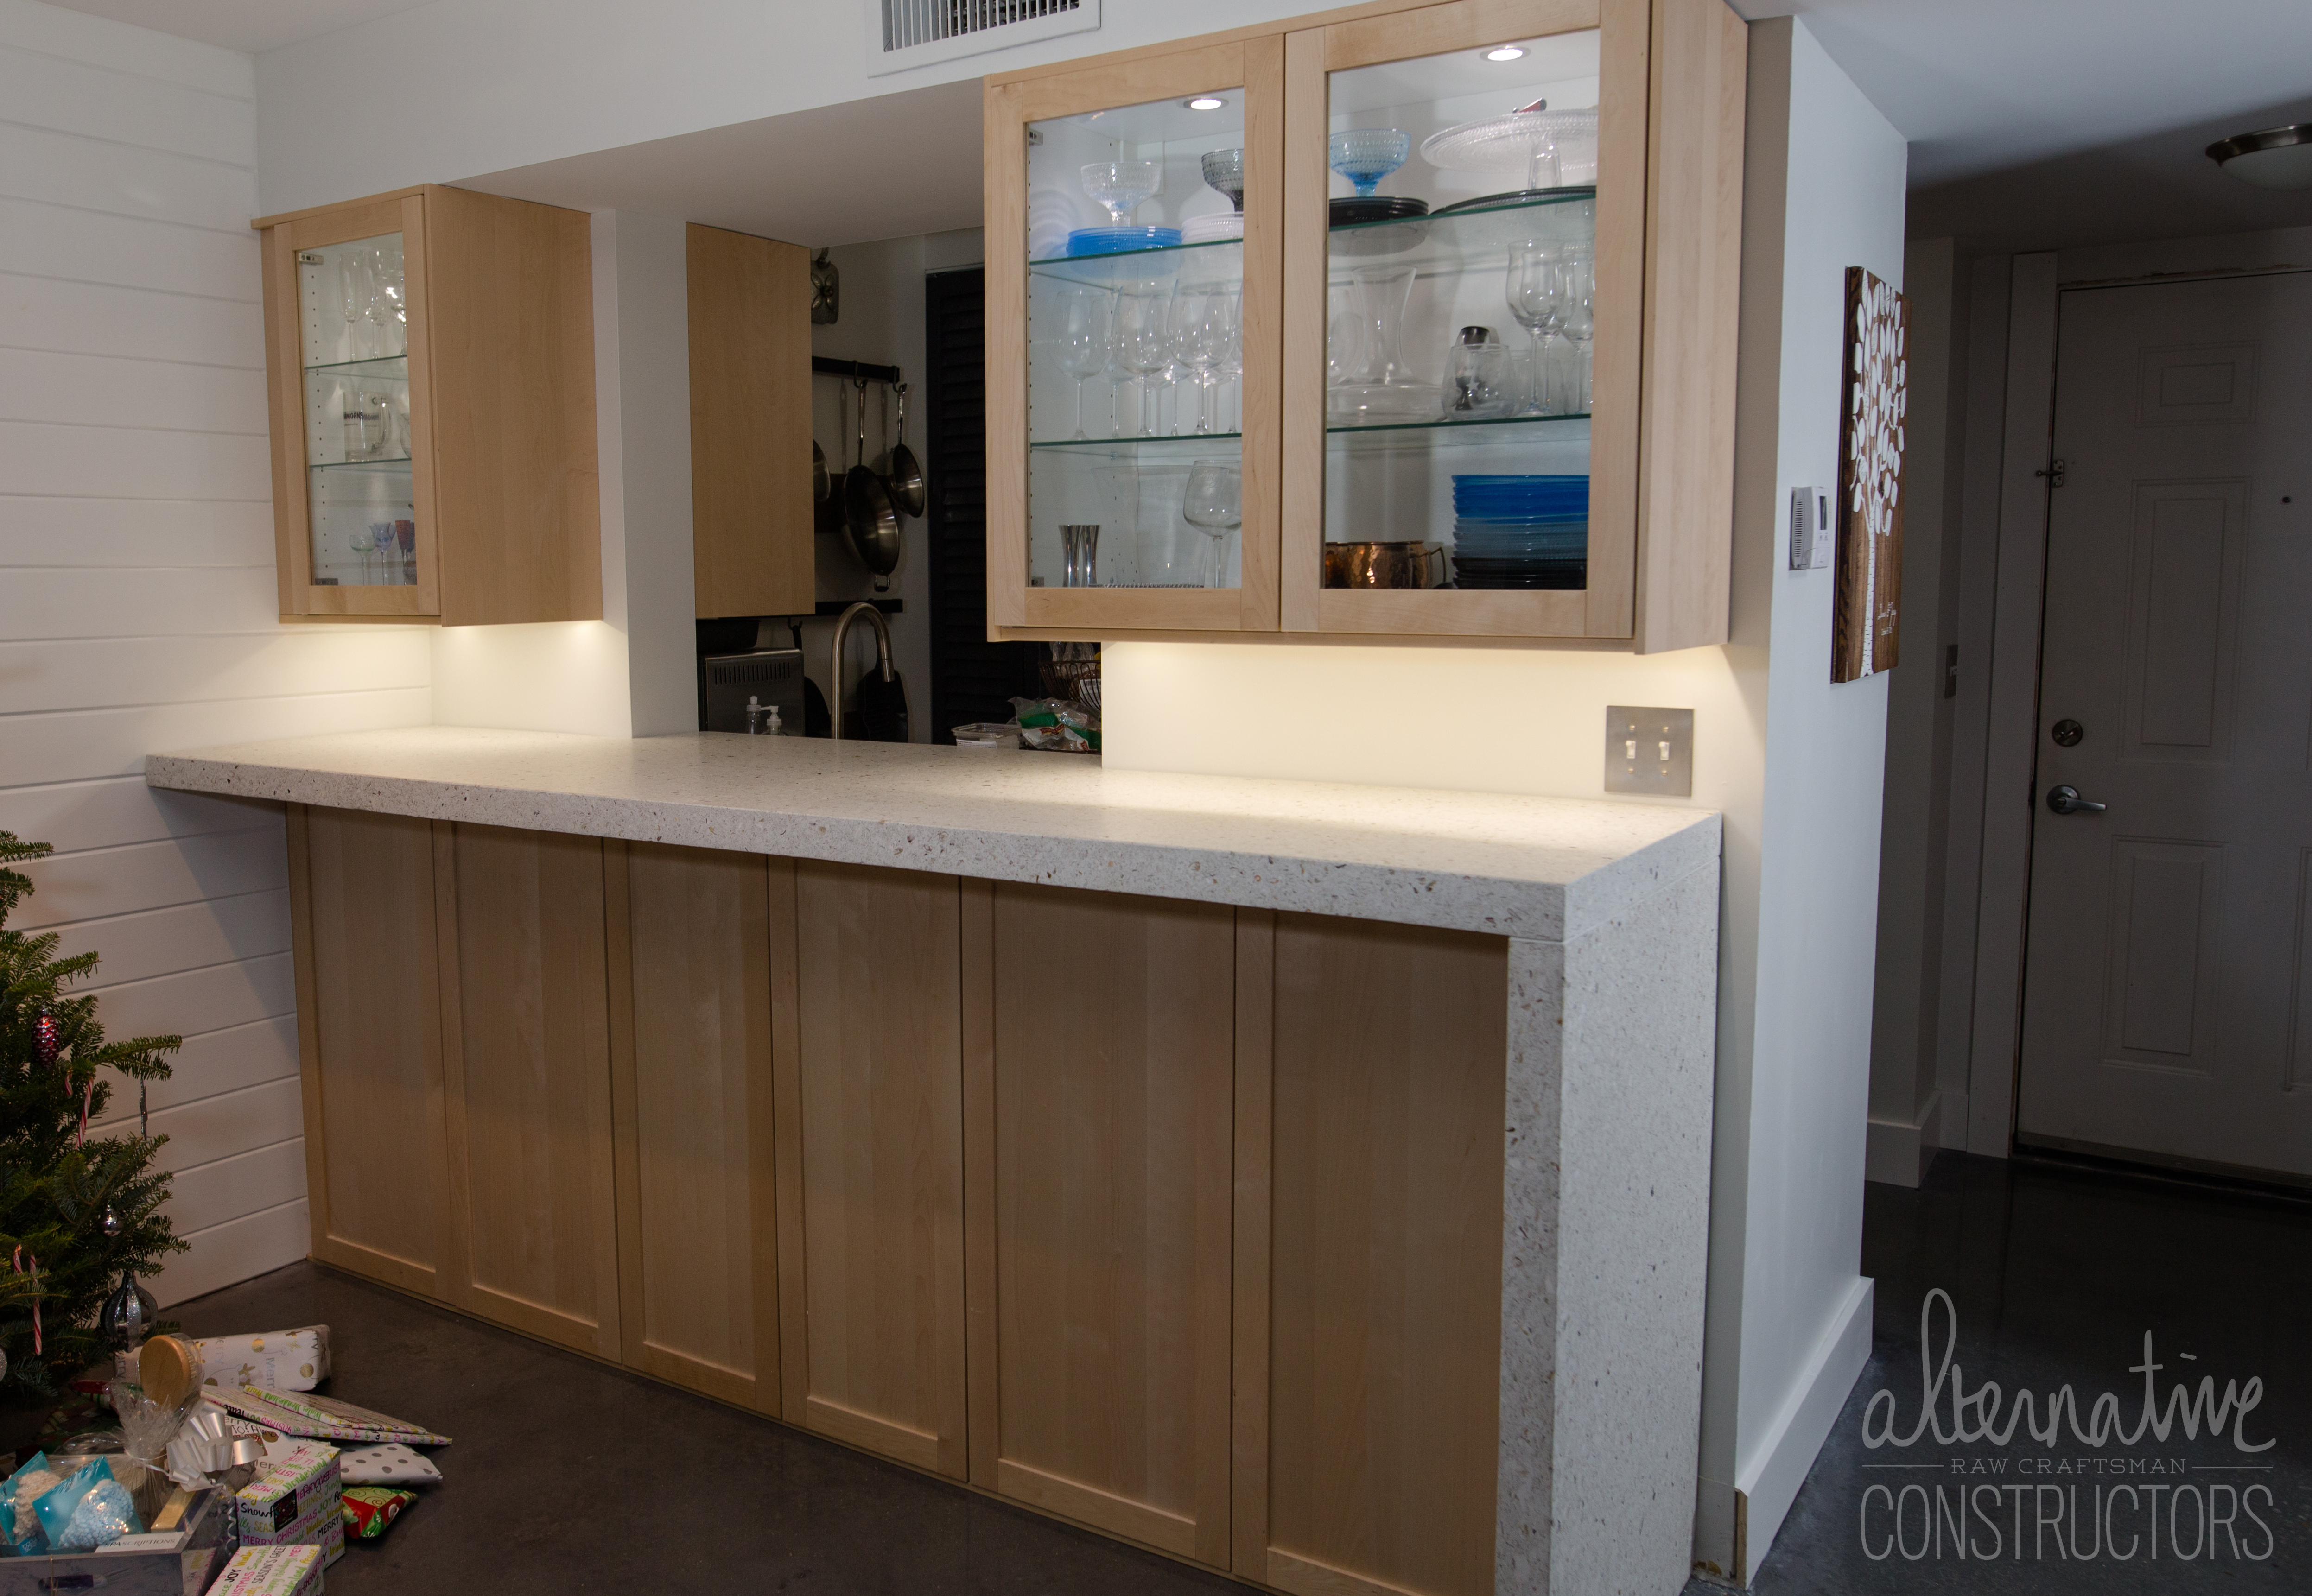 Kitchen Concrete Countertop With Waterfall Edge Color